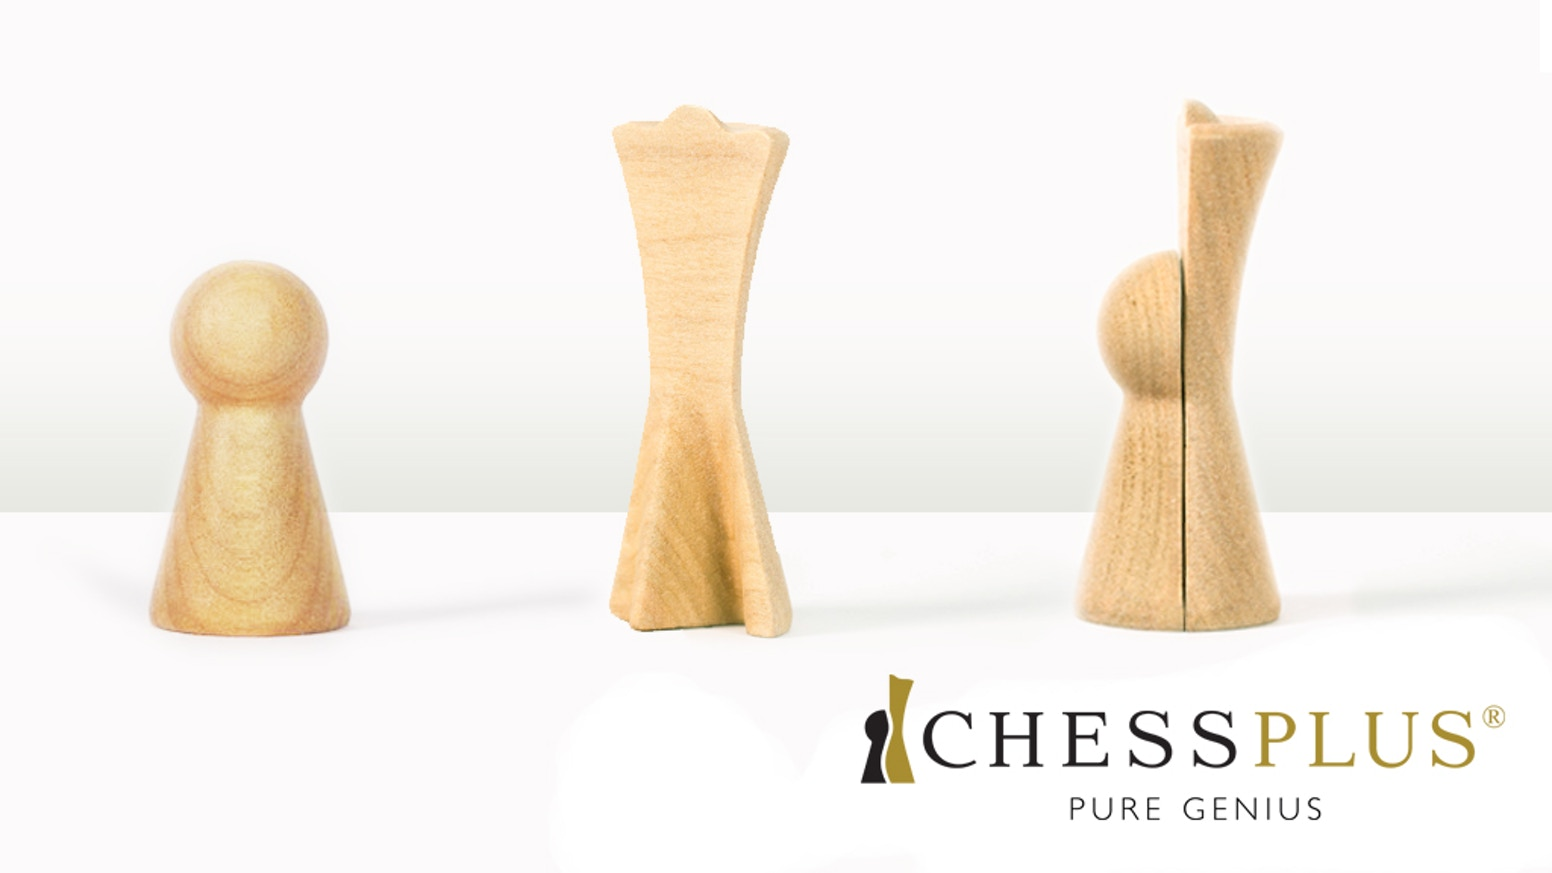 The Original Merge and Split Chess Game. You create new merged pieces and move them as either piece or split them back into their original pieces - simply better. Visit Chessplus.com